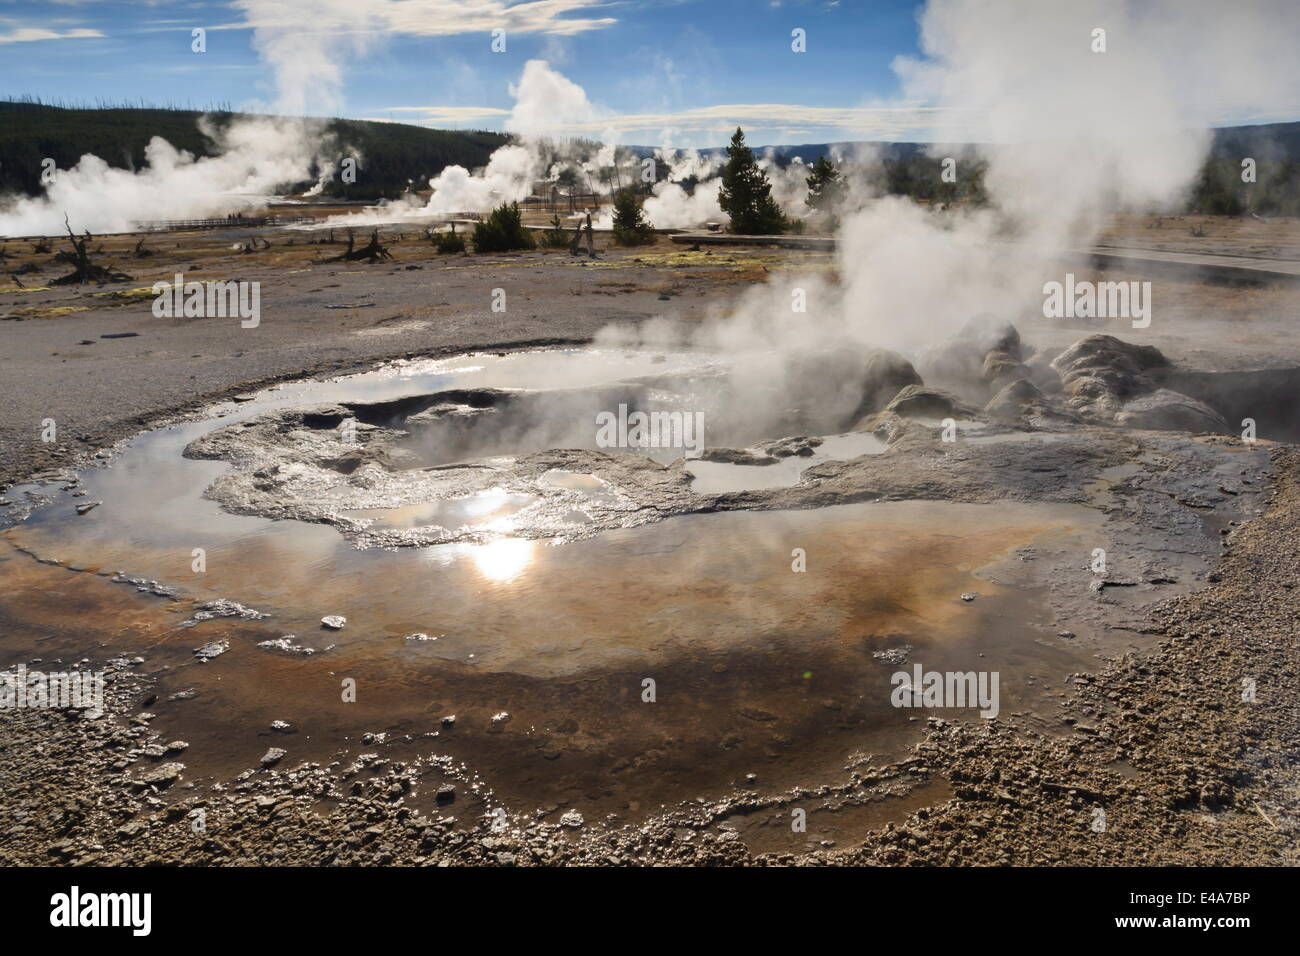 Yellowstone thermal features emit steam backlit by sun, Yellowstone National Park, UNESCO, Wyoming, USAWyoming, Stock Photo